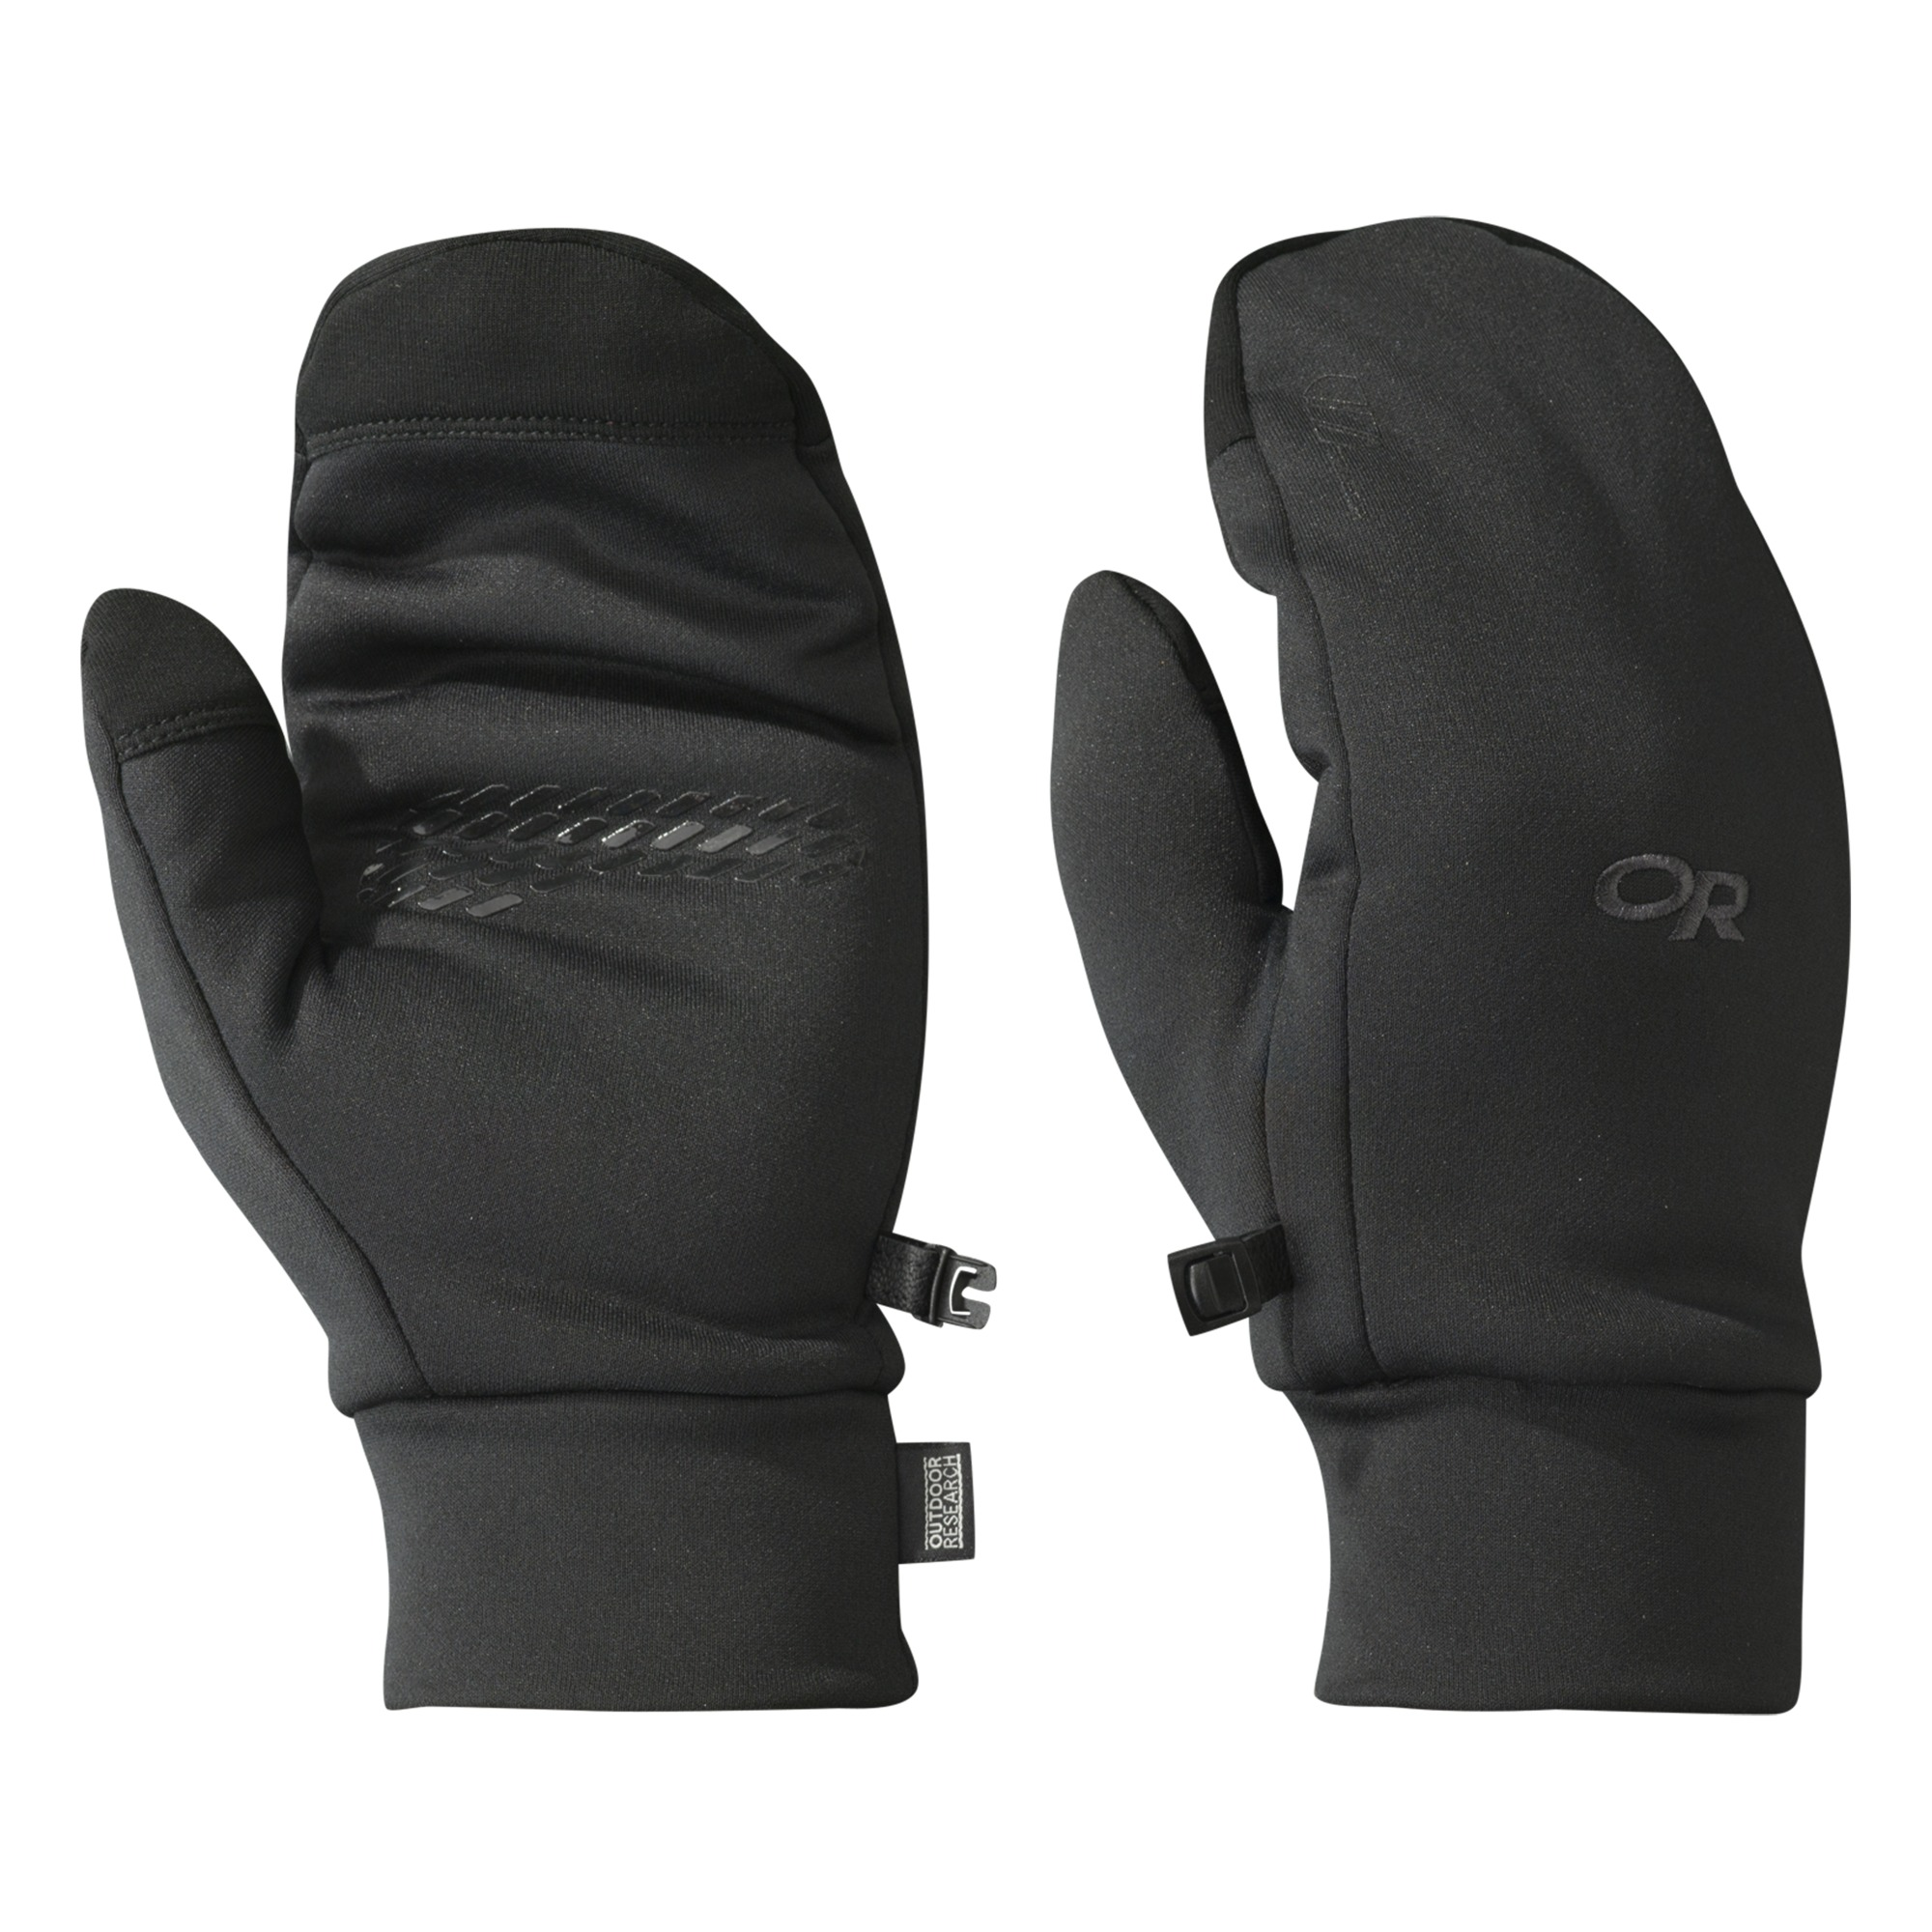 d01bace5a Men's PL 400 Sensor Mitts - black | Outdoor Research